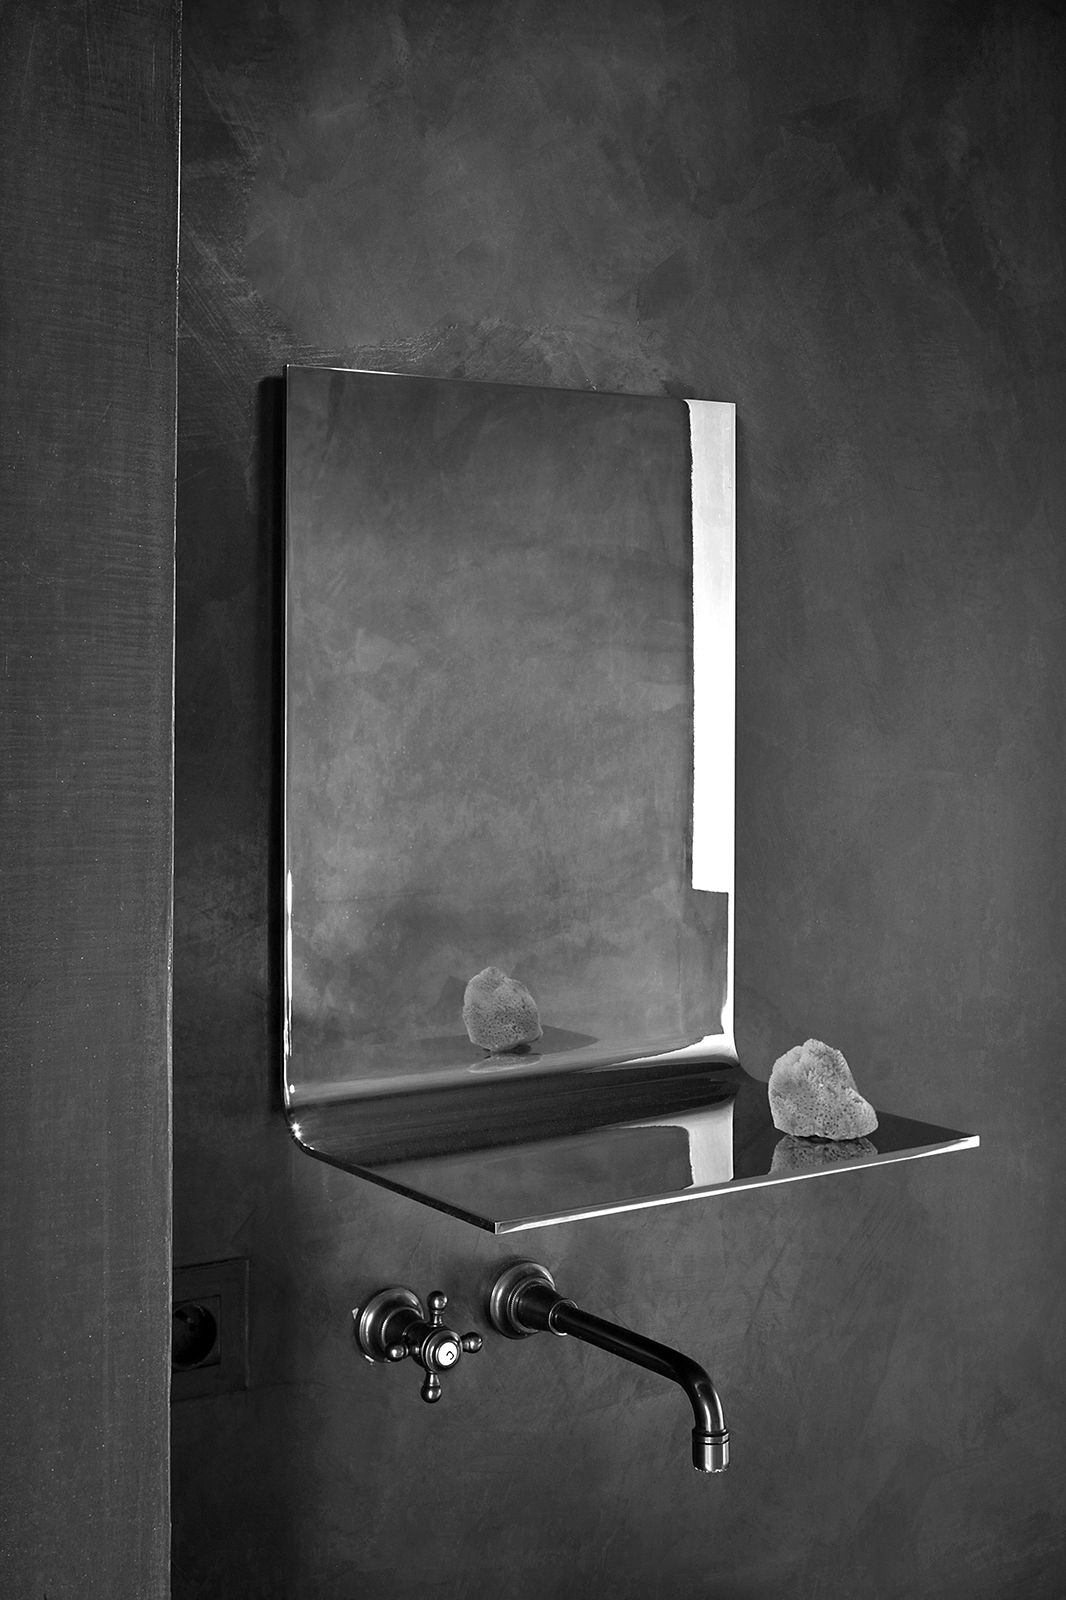 bended mirror